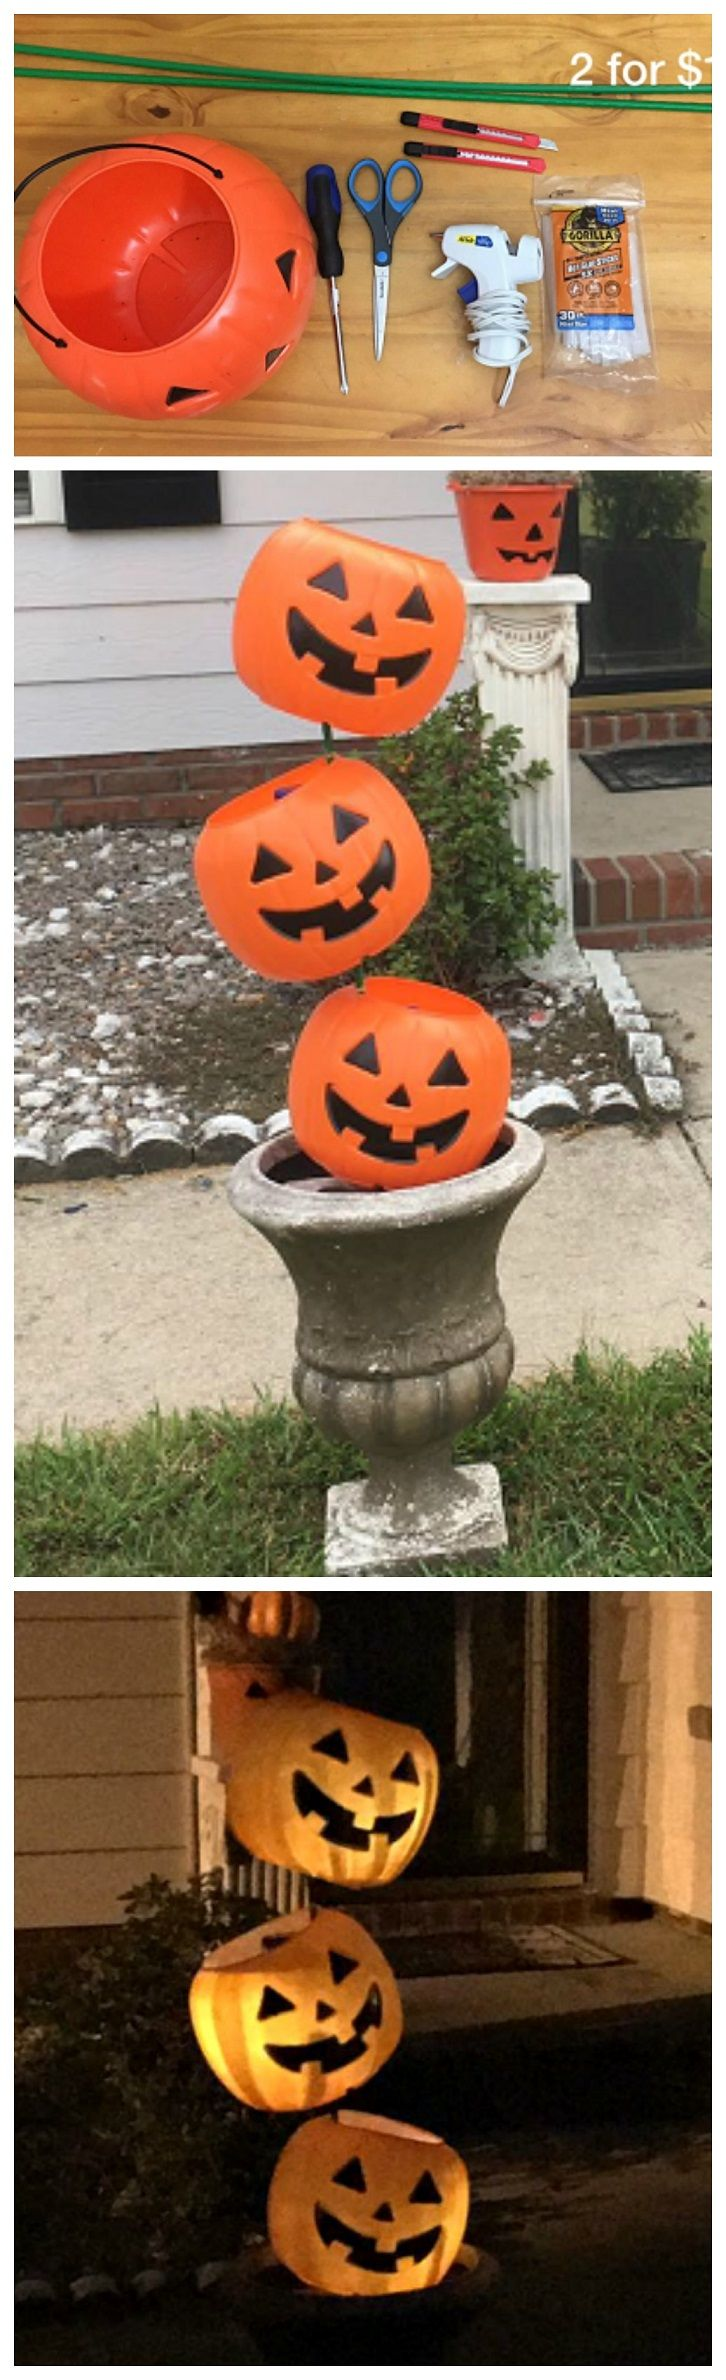 make a plastic pumpkin pail tipsy decoration for halloween such a cheap and easy craft - Cheap Halloween Yard Decorations